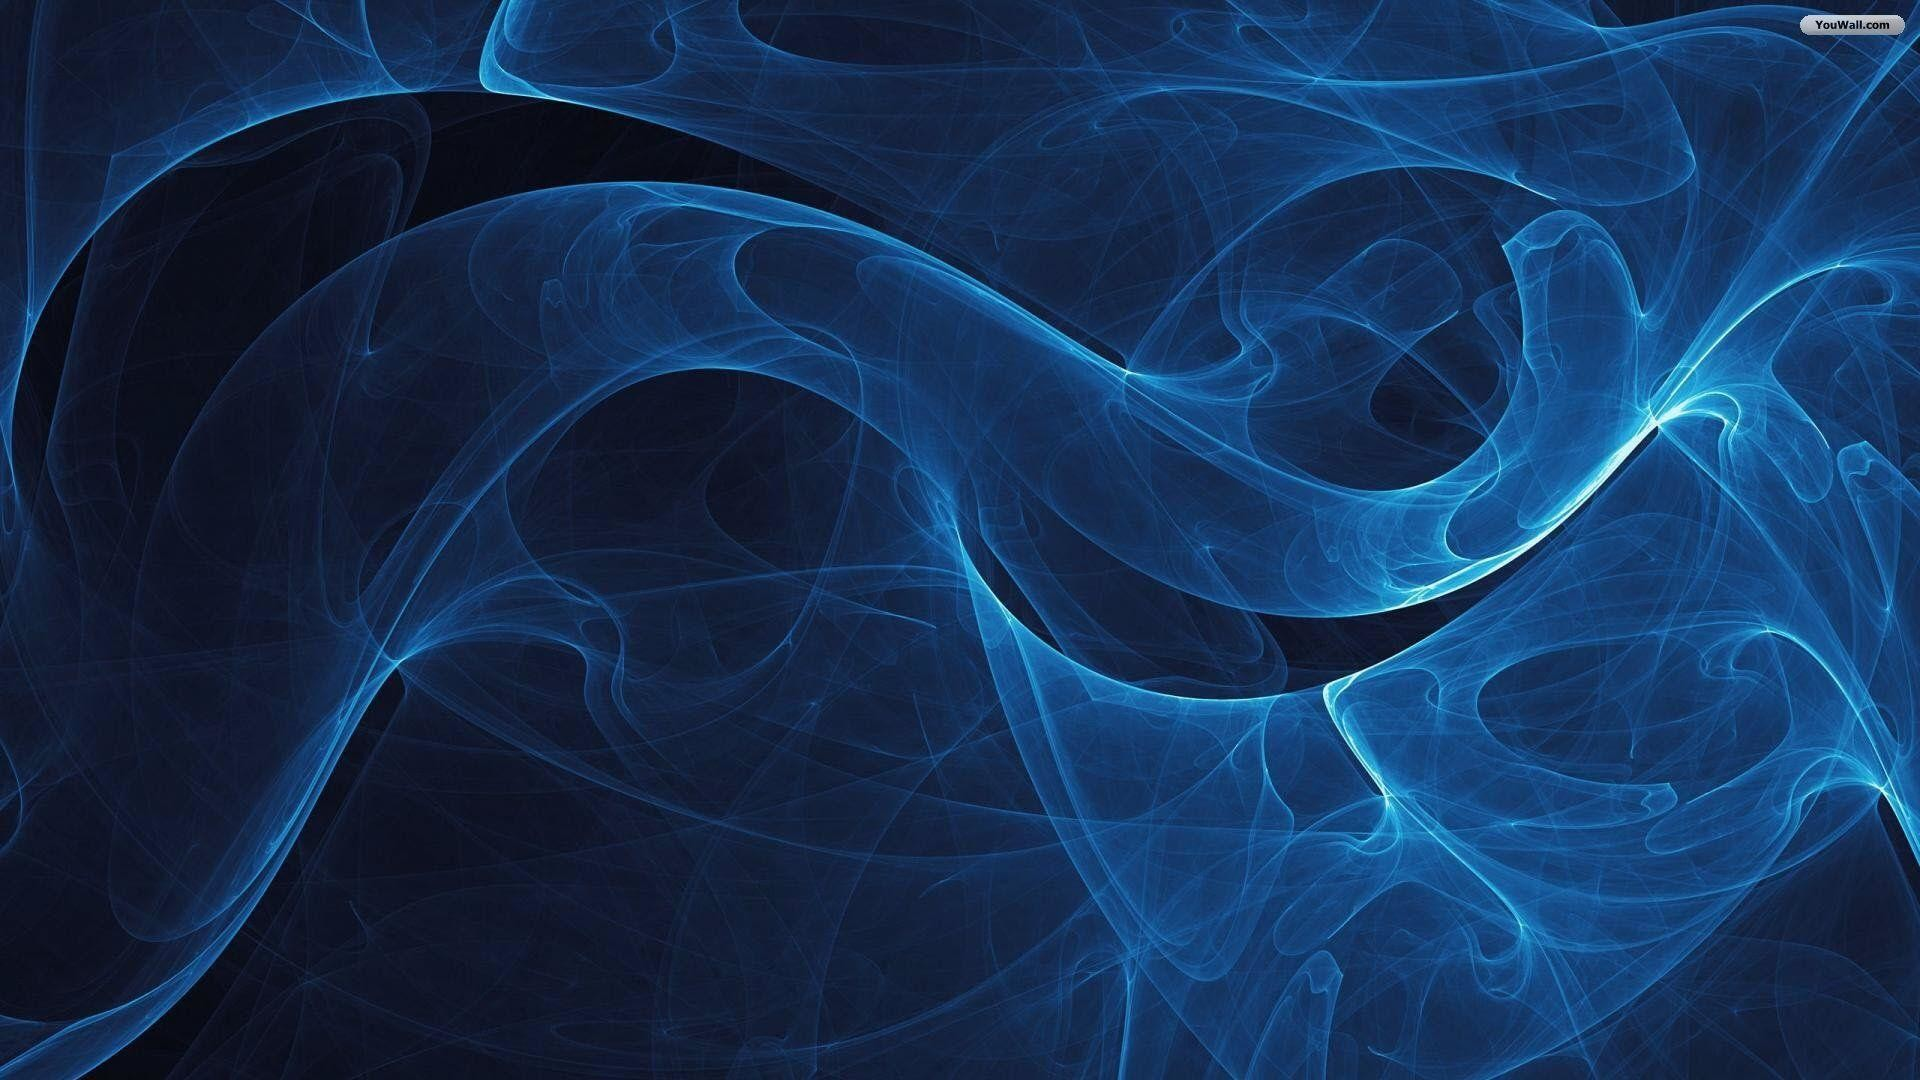 Blue And Black Abstract Wallpaper 63 Images